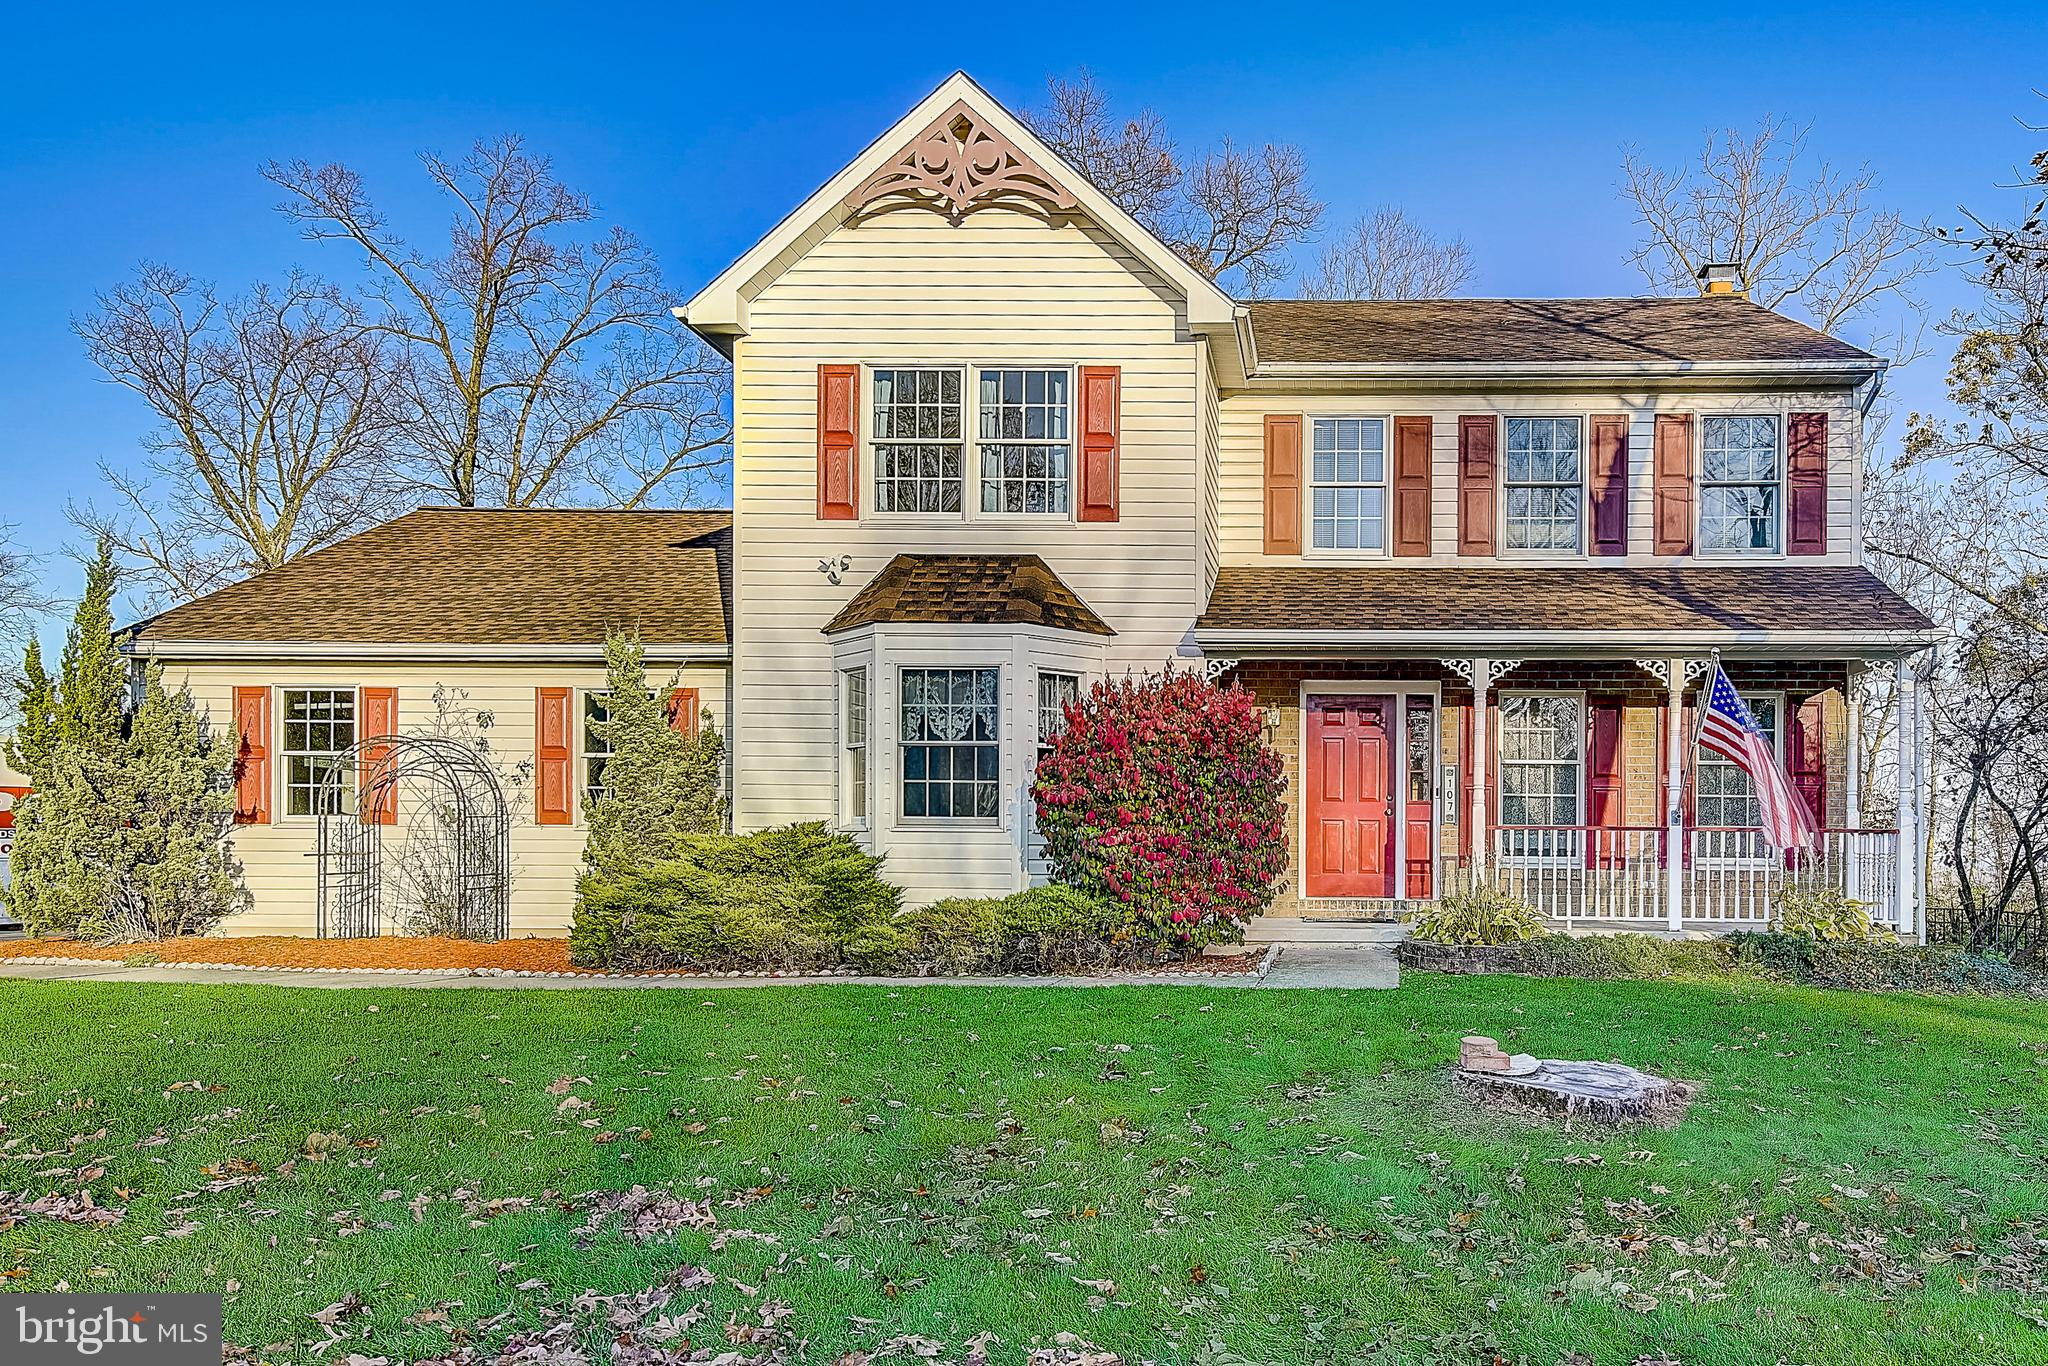 107 SPY GLASS COURT, BATH, PA 18014